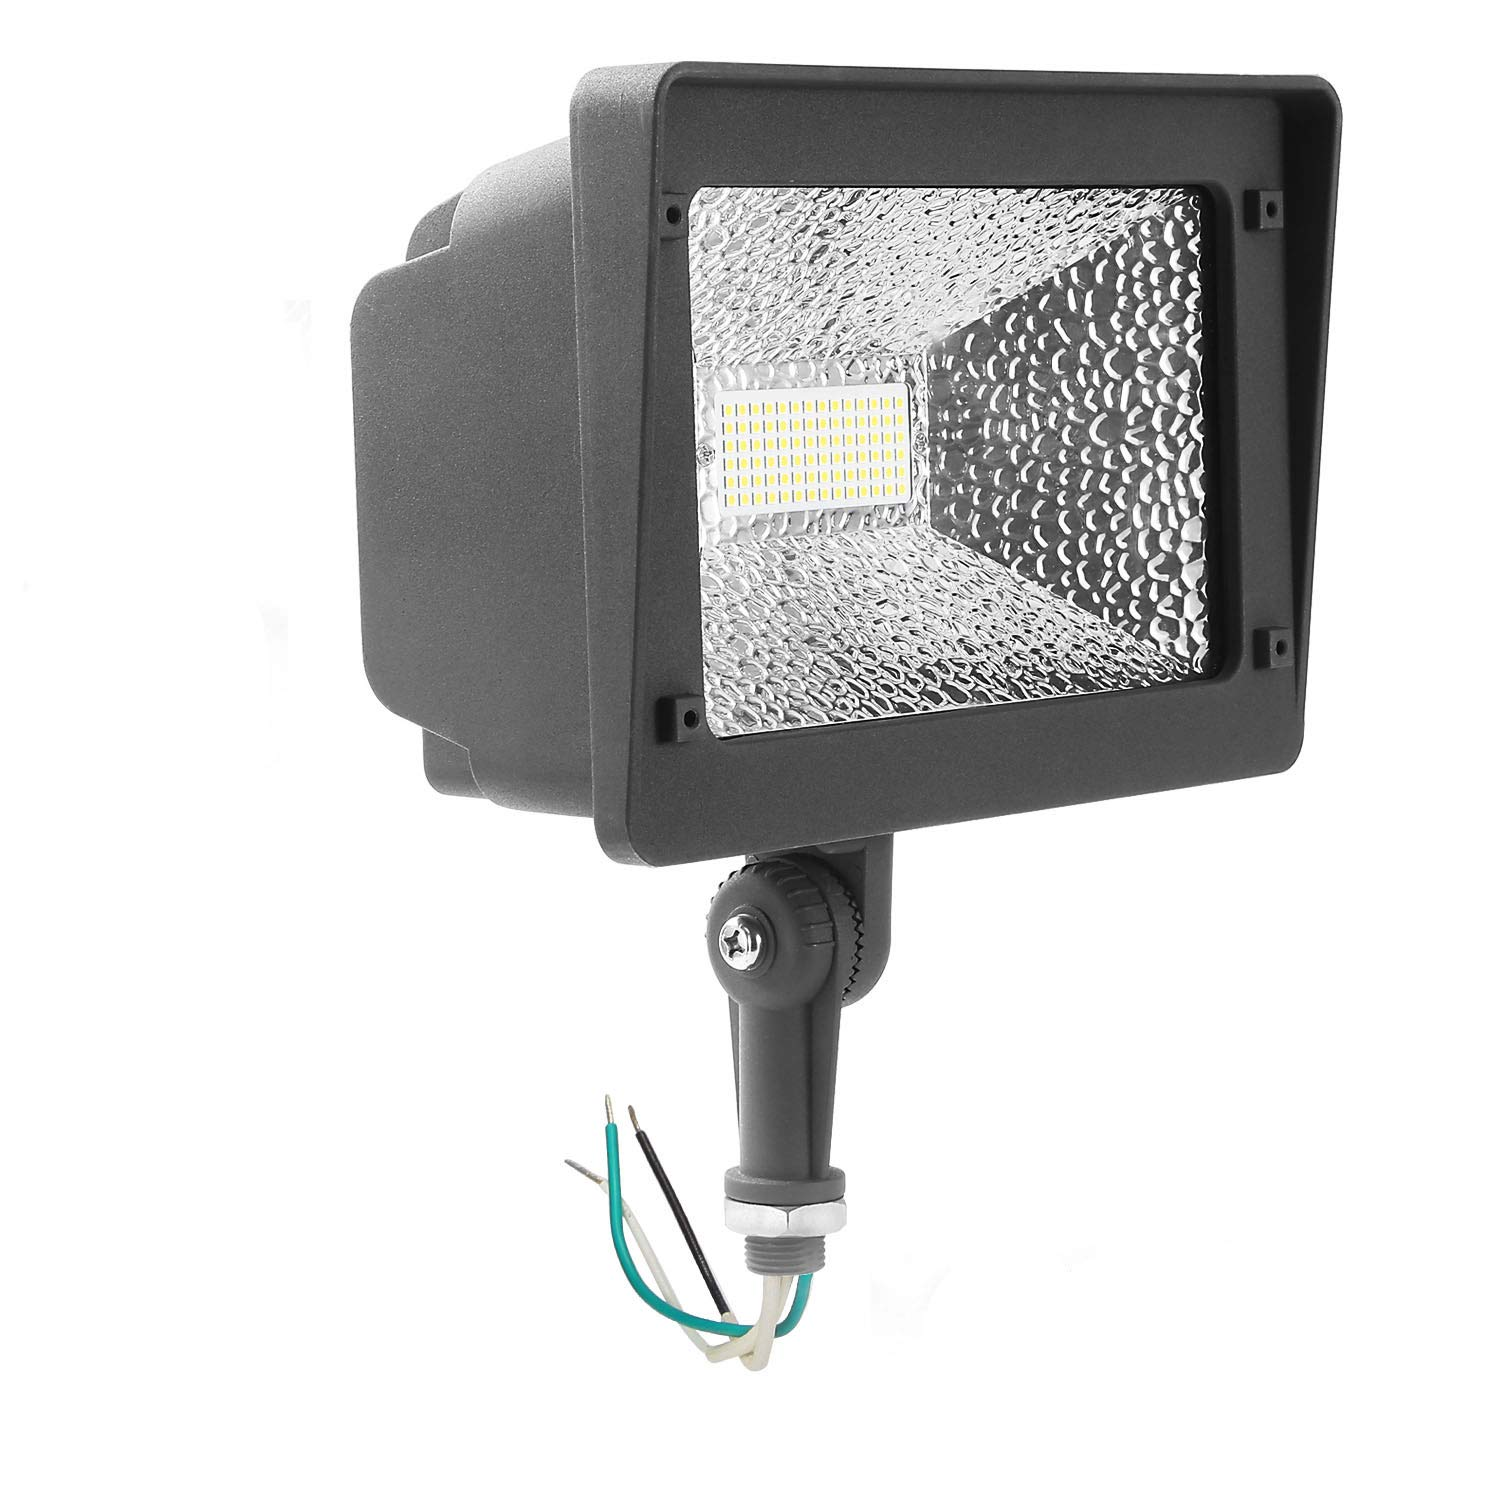 Cinoton LED Floodlight with Knuckle, 50W Security Outdoor Lighting (250W Equivalent), 5500 Lumen, 5000K (Crystal White Glow), Waterproof, IP65, 100-277v, Instant On (1 Pack, NOT Photocell) by CINOTON